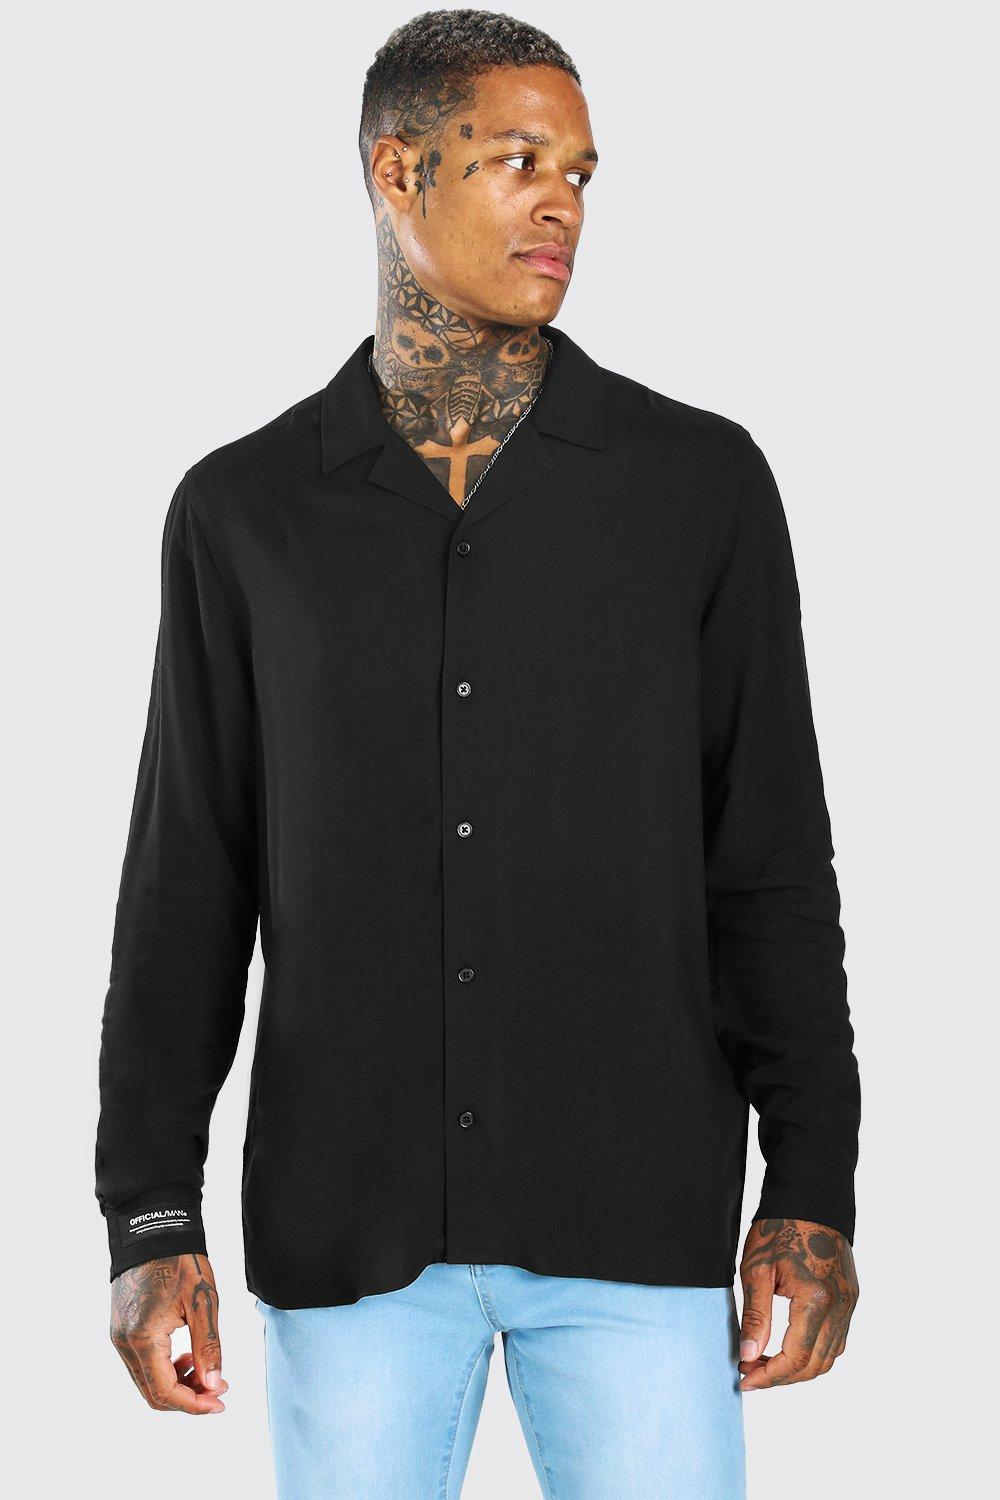 Mens Vintage Shirts – Casual, Dress, T-shirts, Polos Mens MAN Cuff Tab Long Sleeve Oversized Shirt - Black $10.00 AT vintagedancer.com